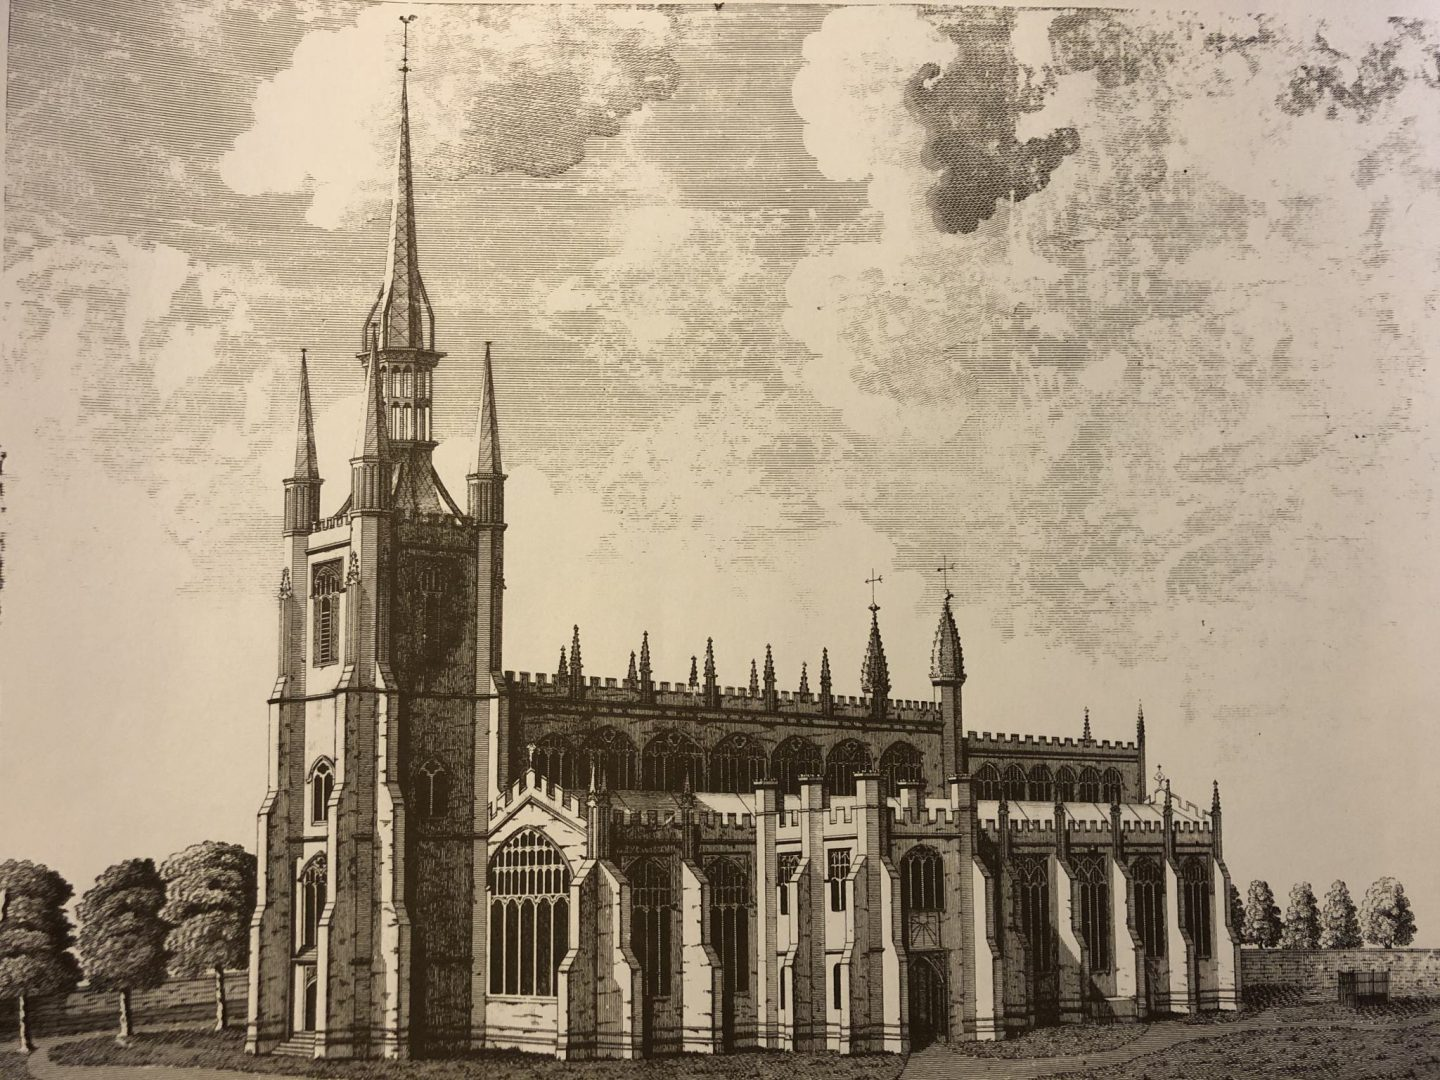 Print of a copperplate engraving of St Mary's church, Saffron Walden. The engraving was made in 1784 by William Robinson. Courtesy of St Mary's Church, Saffron Walden.